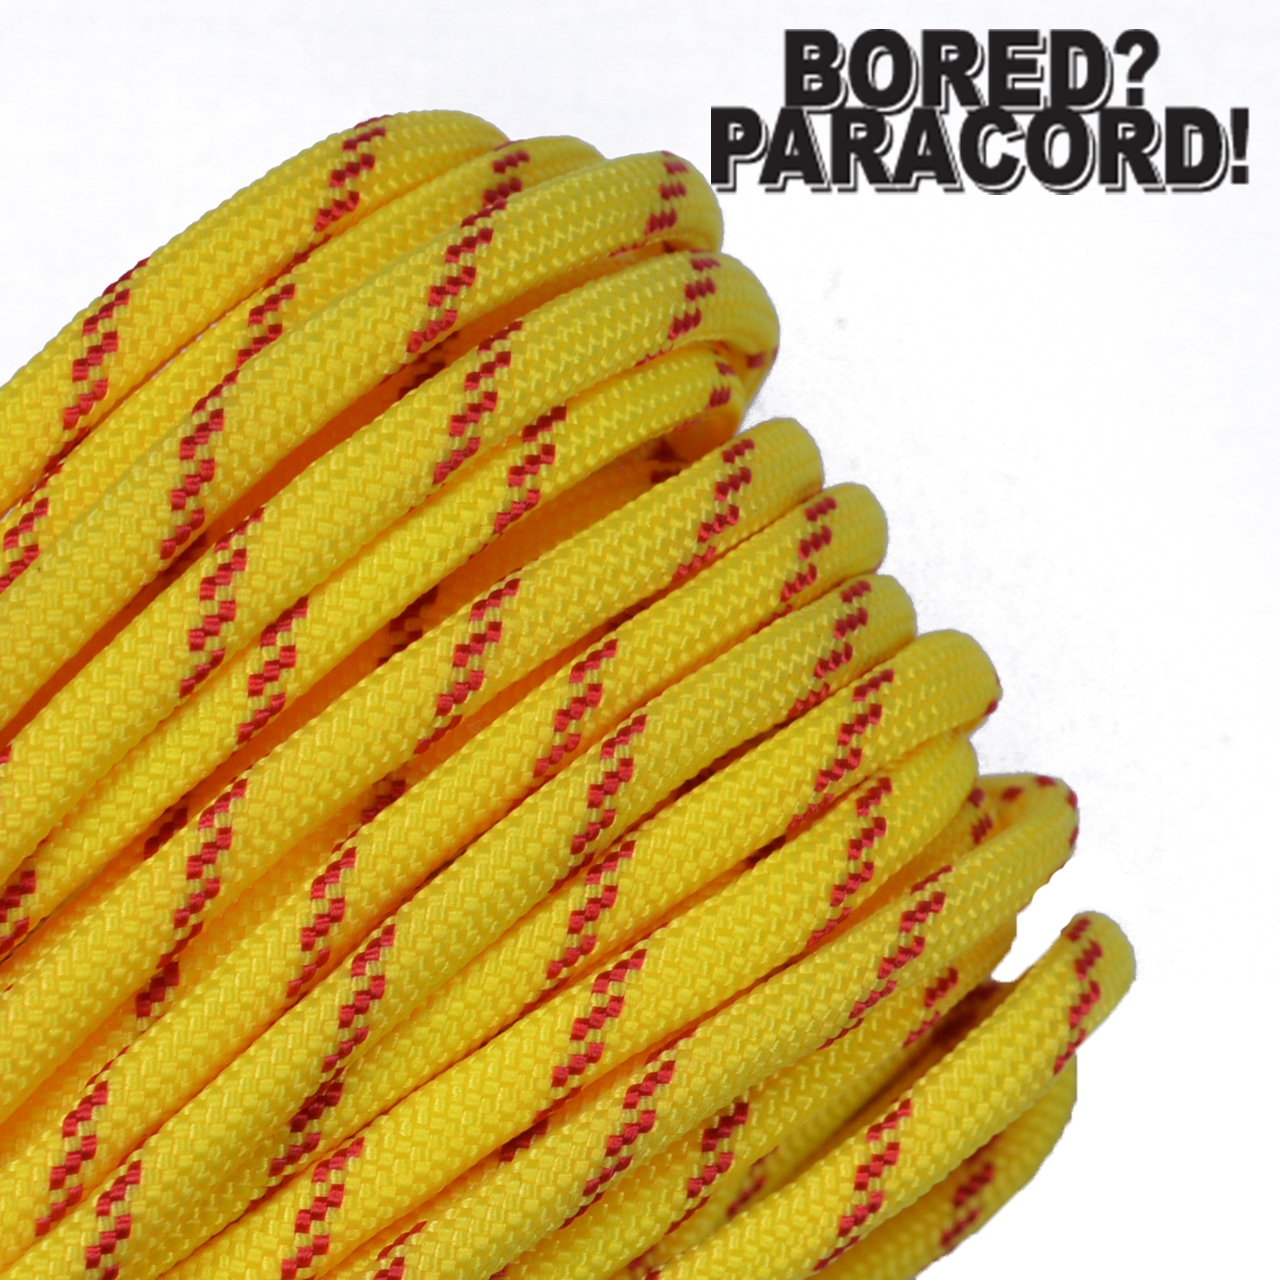 Over 250 Colors 100 ft BoredParacord Brand 550 lb Paracord